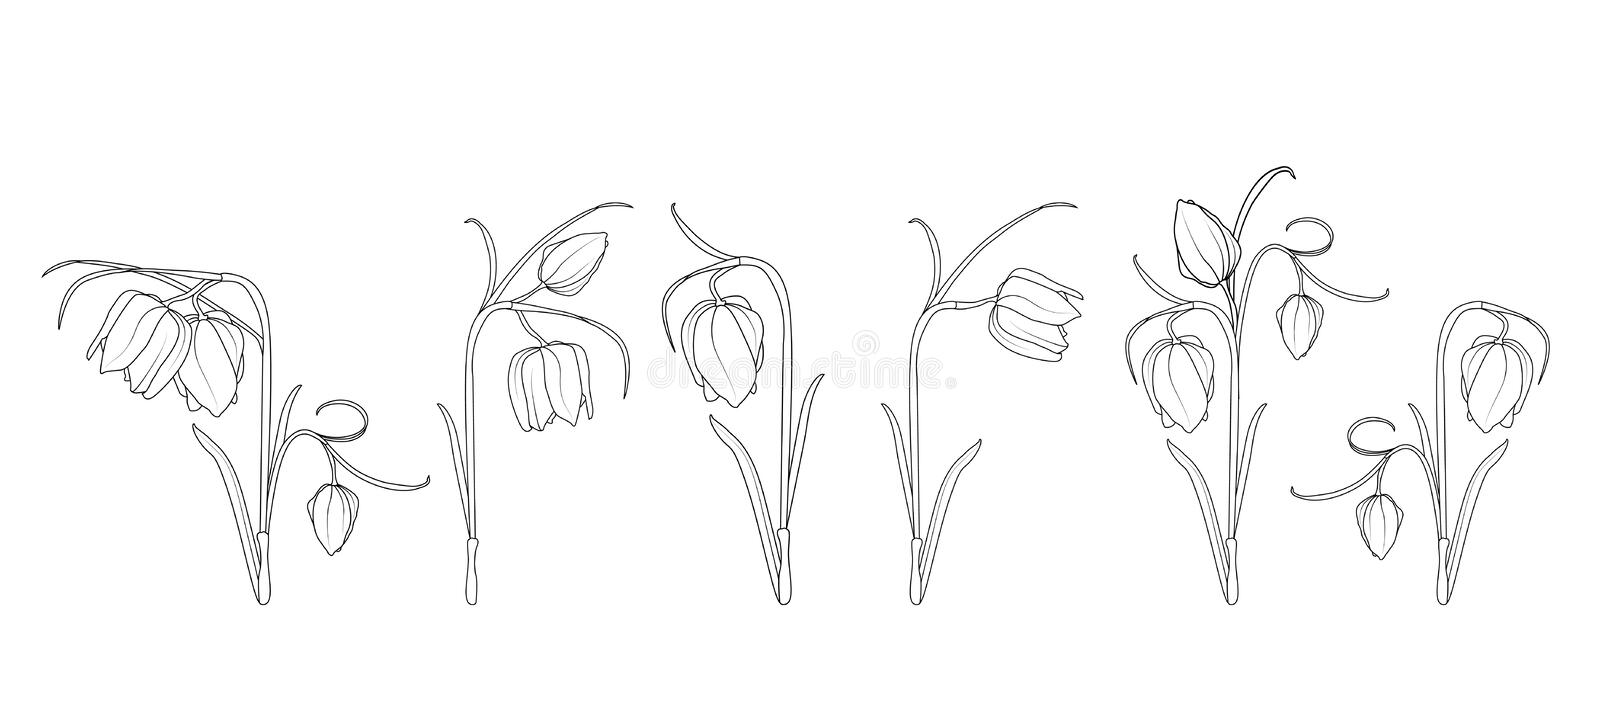 Wild tulip spring flowers black and white engraved ink art. Isolated illustration floral elements collection set. Line design sketch drawing outline royalty free illustration